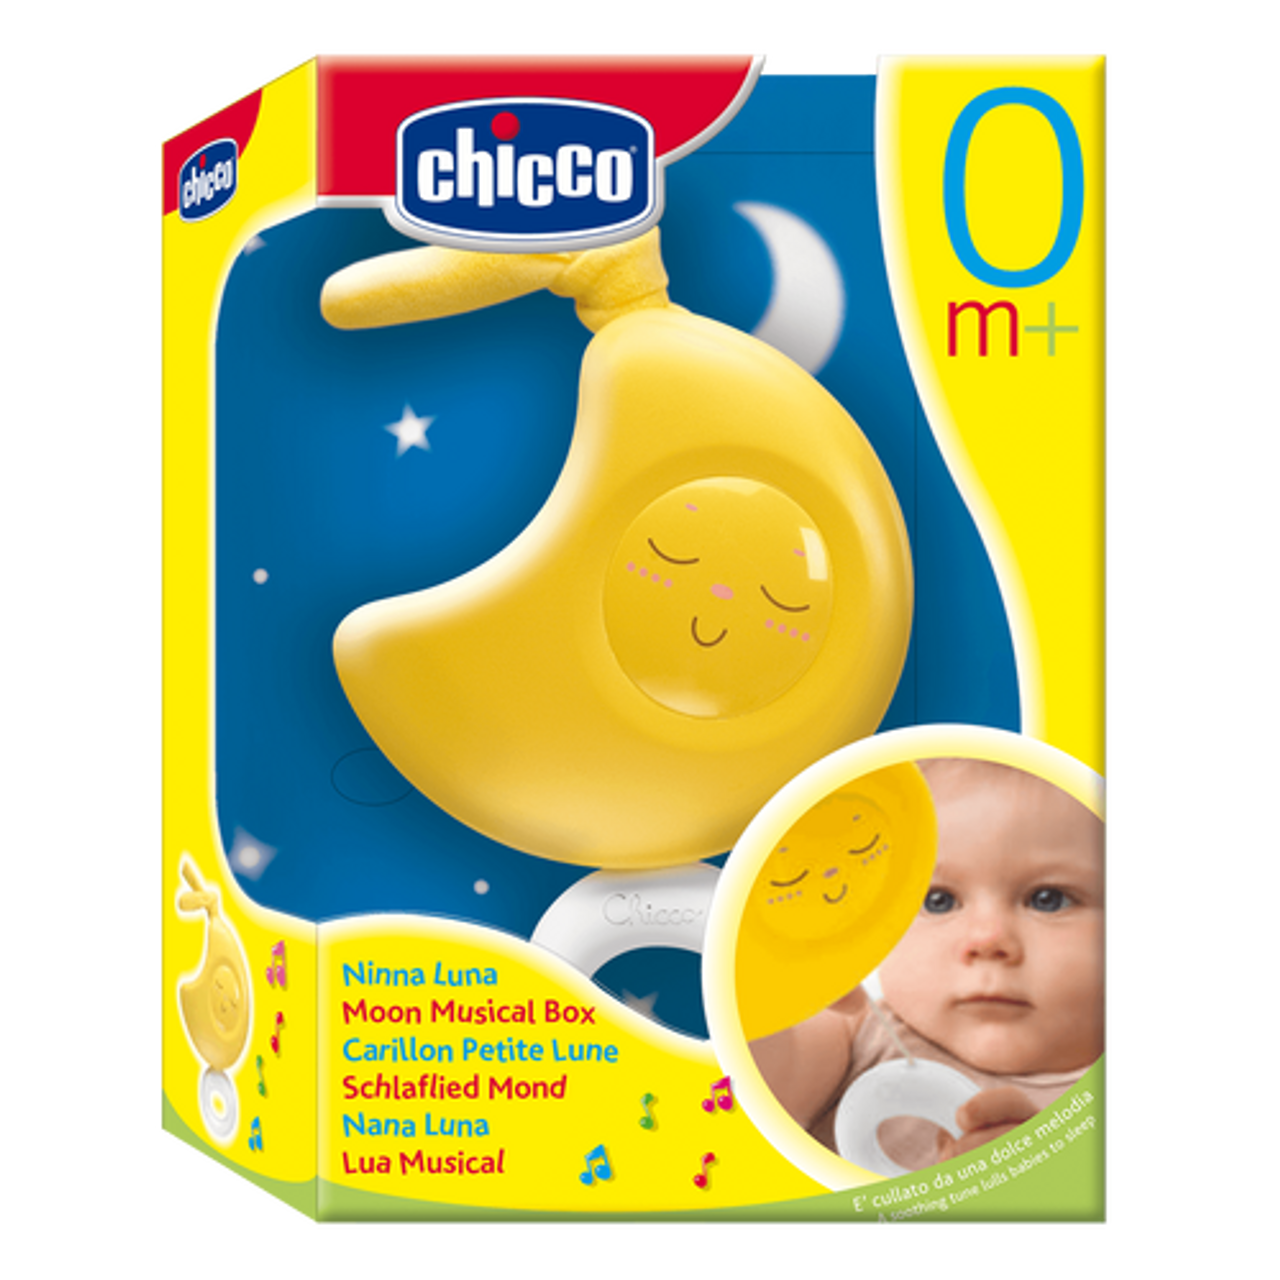 Chicco Lullaby Musical Moon Cot Toy at Baby Barn Discounts Chicco Musical moon simply pull the ring to listen to a soothing tune which softly lulls your little one to sleep.